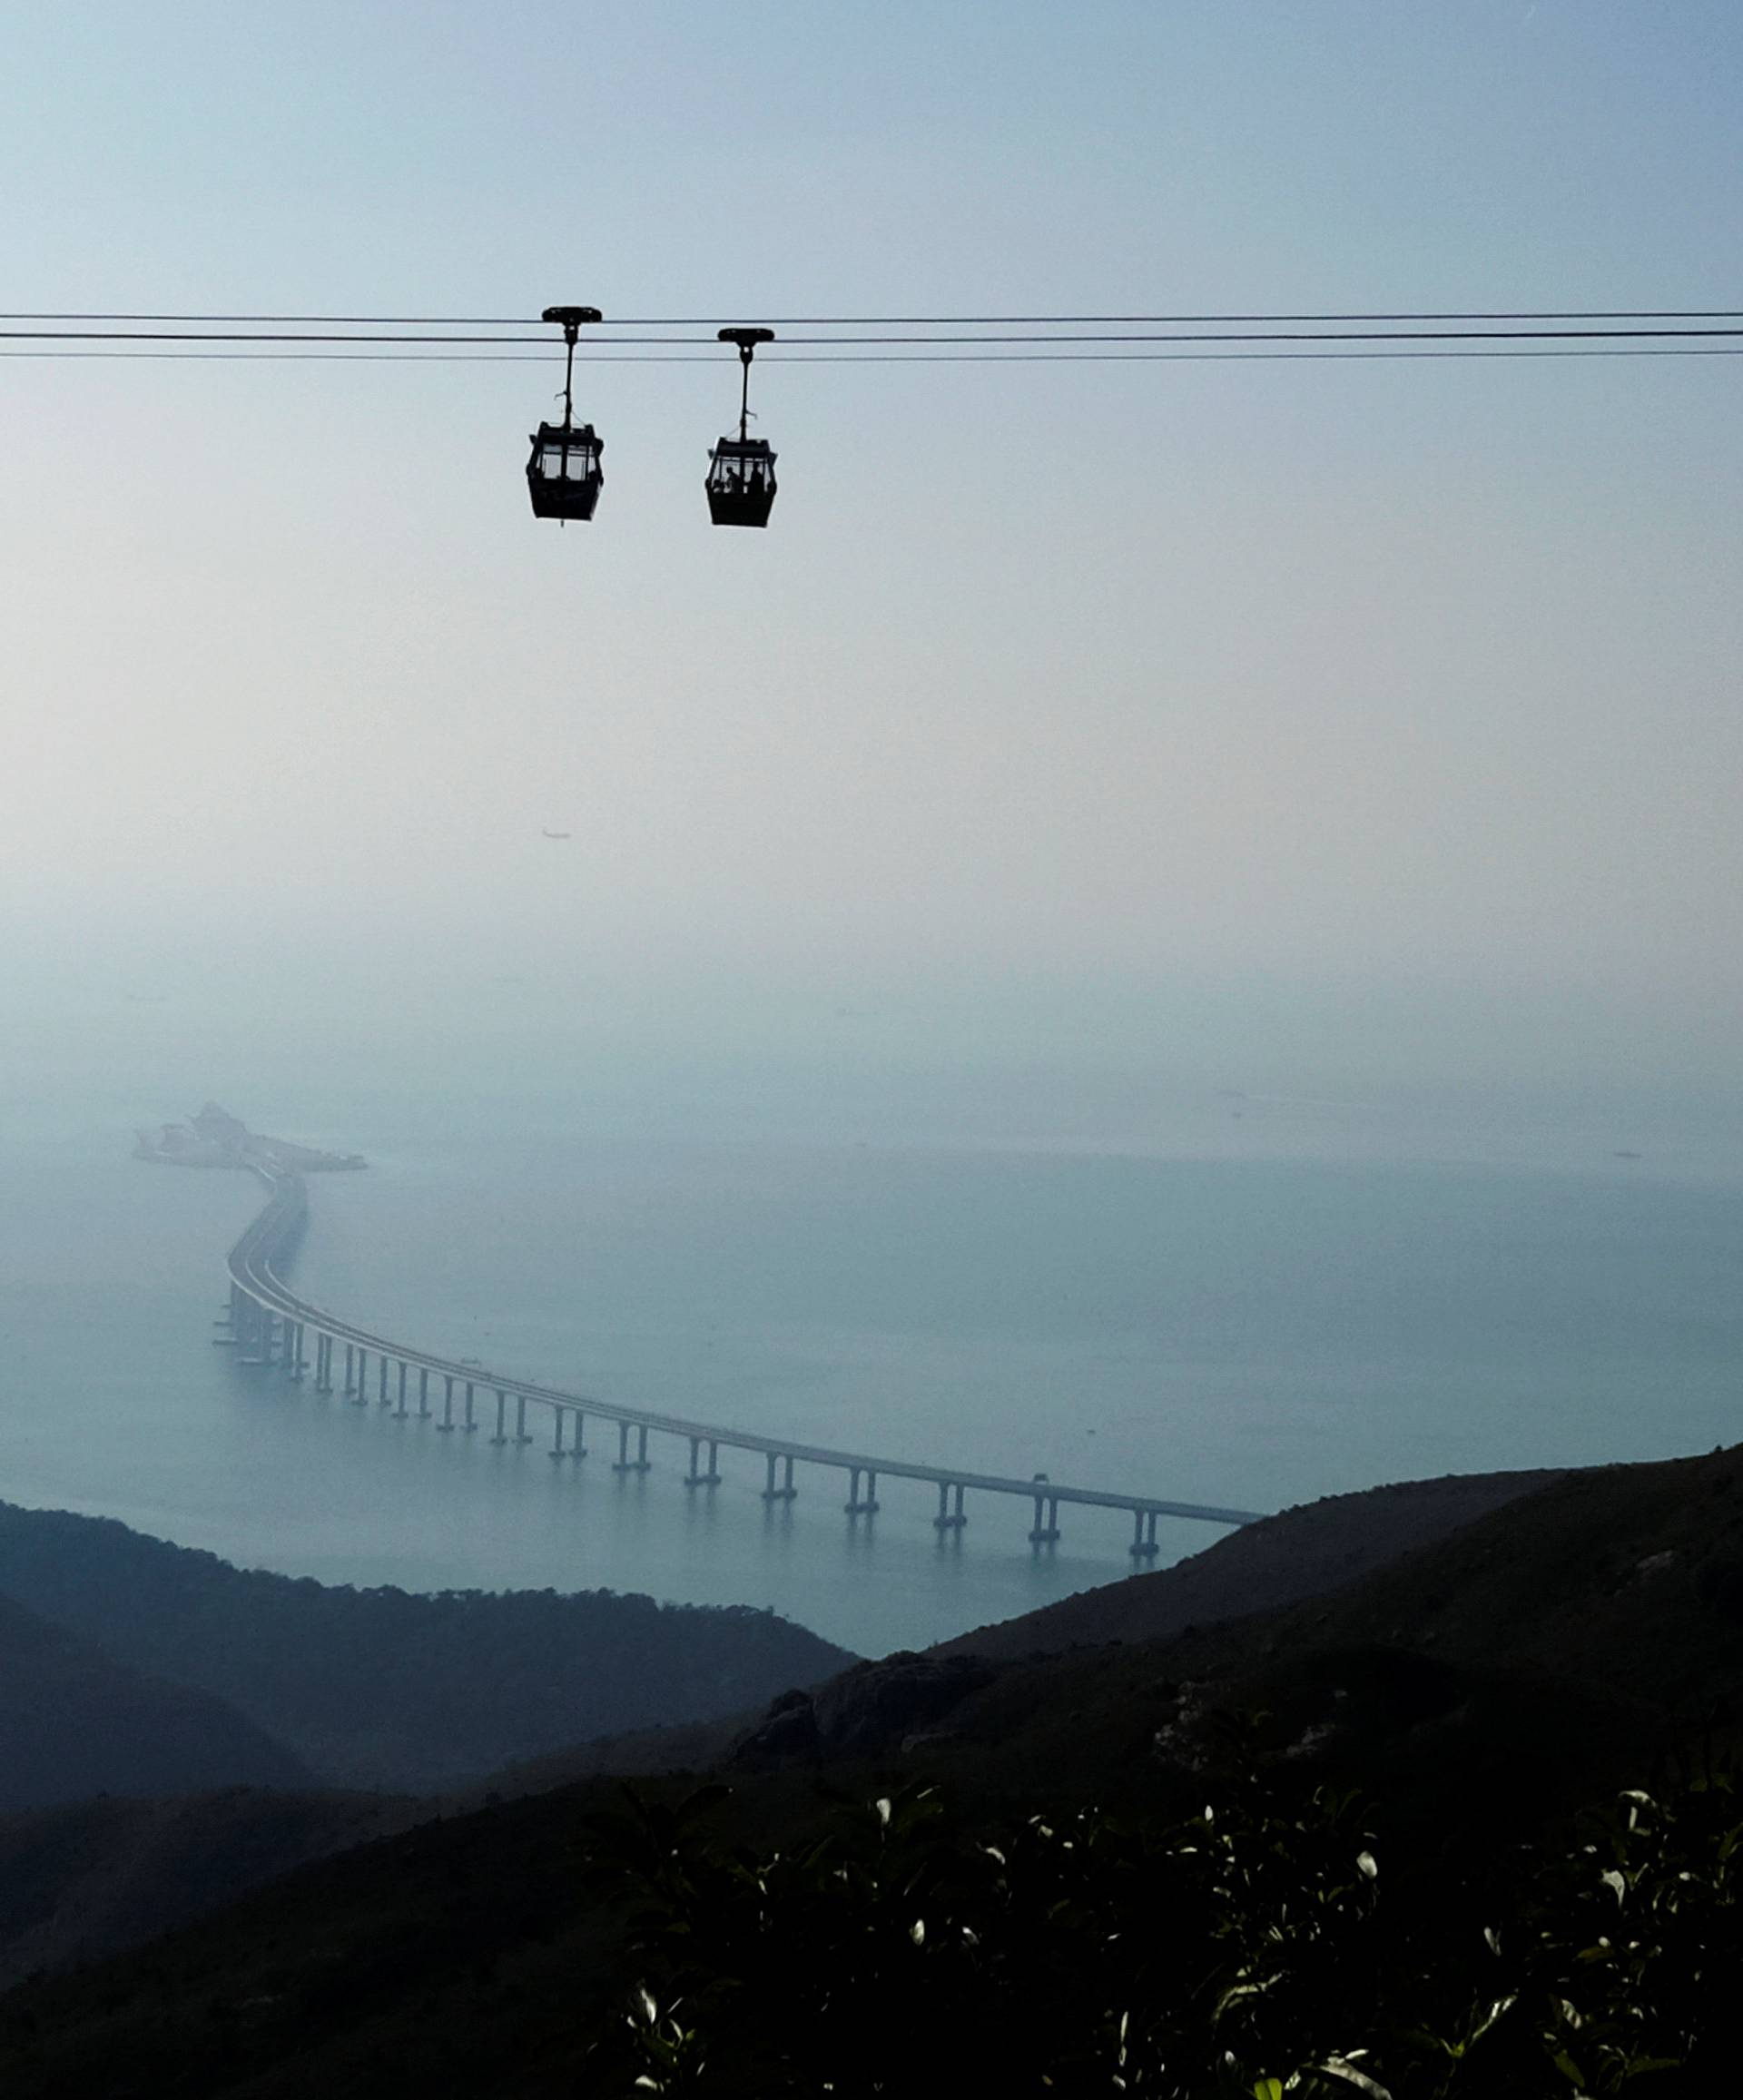 Cable cars move in front of the Hong Kong-Zhuhai-Macau bridge off Lantau island in Hong Kong